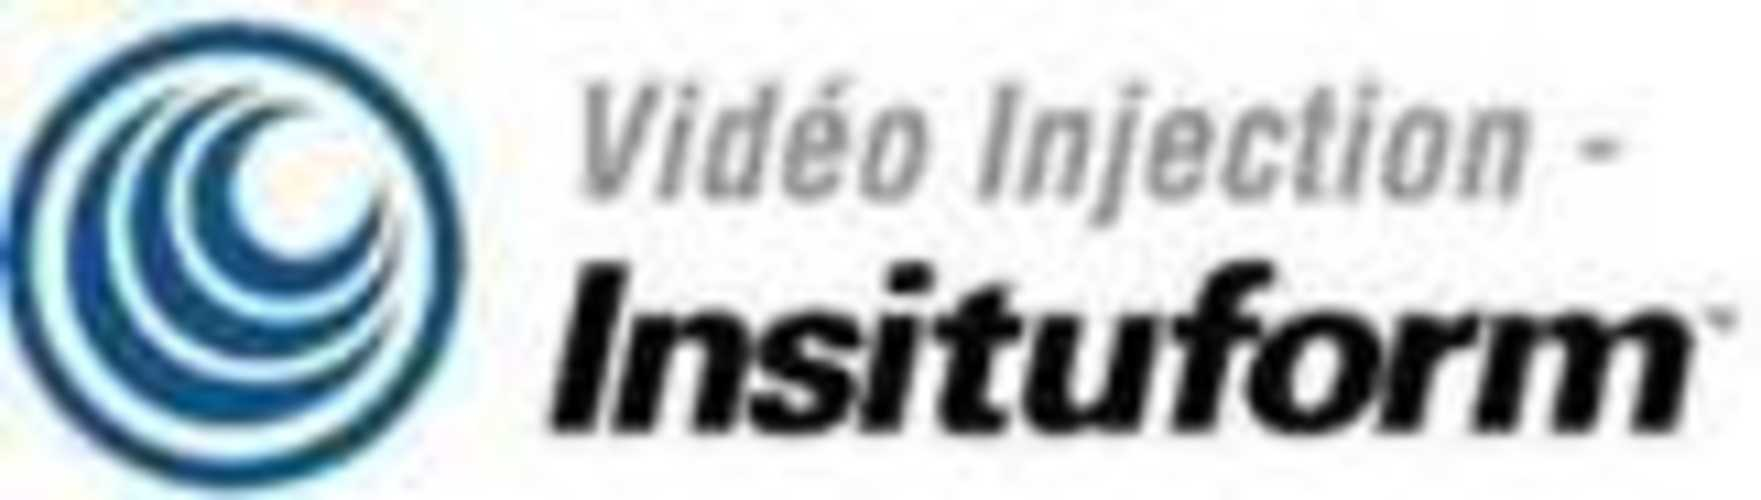 VIDEO INJECTION - INSITUFORM 0